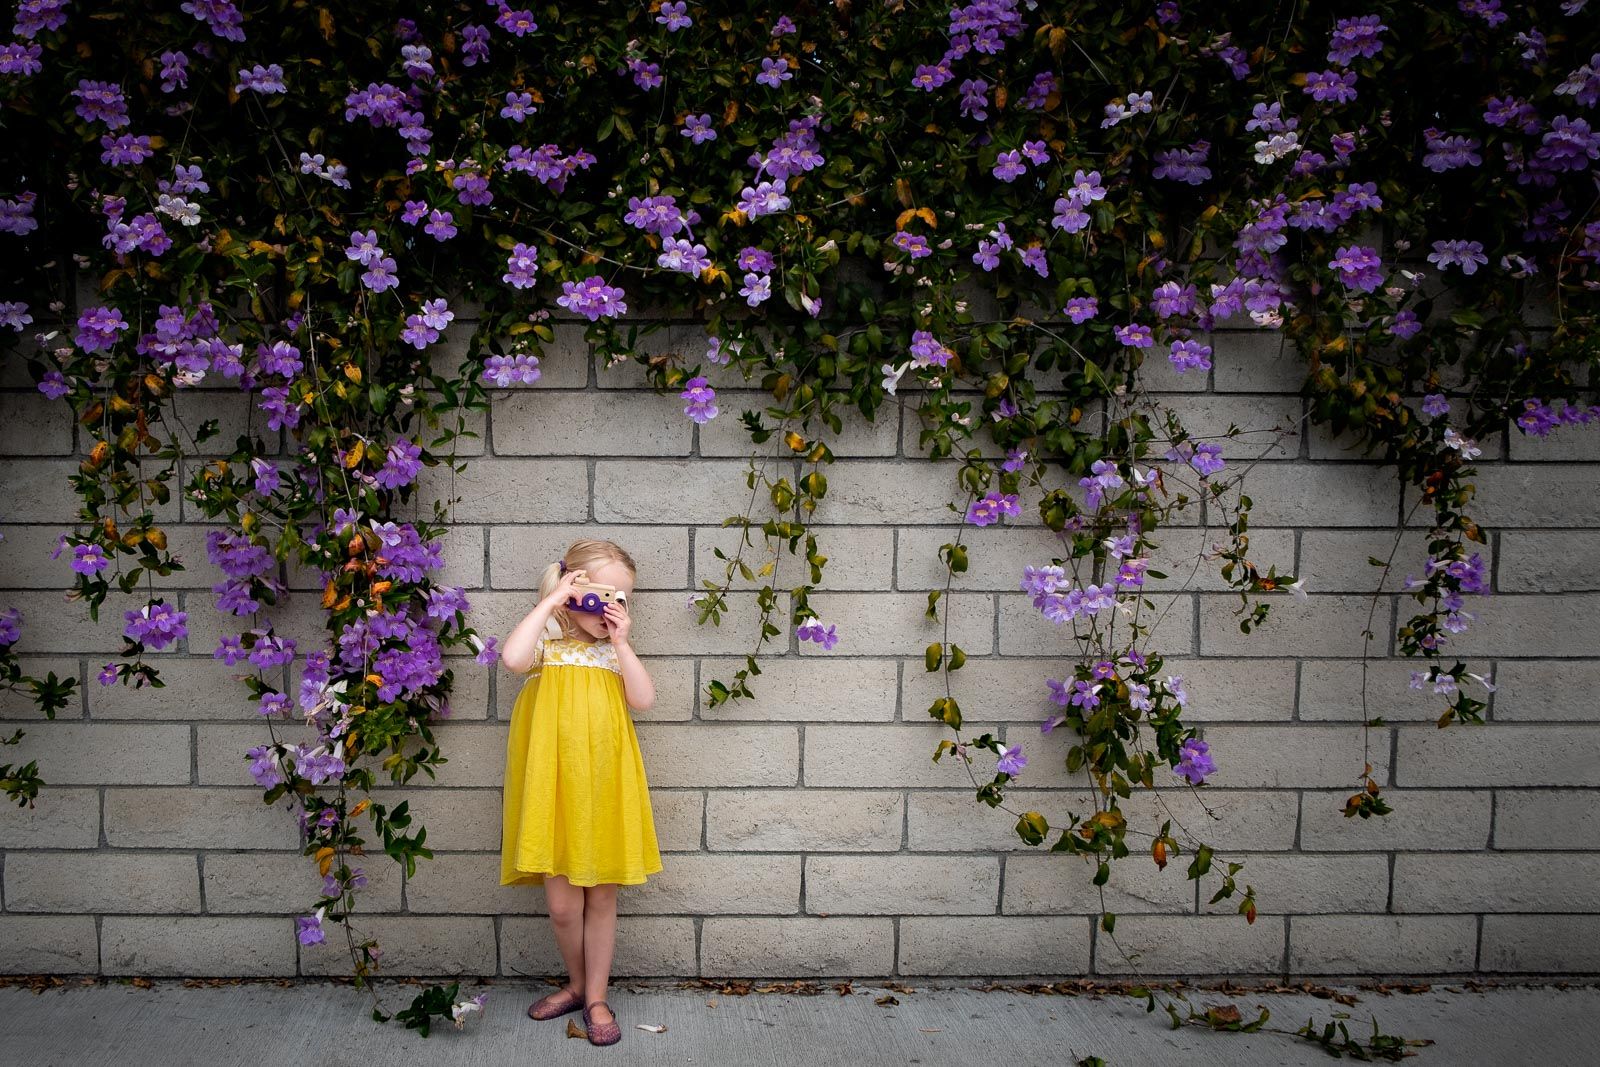 Unexpected Backdrop girl with wooden camera in front of brick wall with purple flowers yellow dress karlee hooper